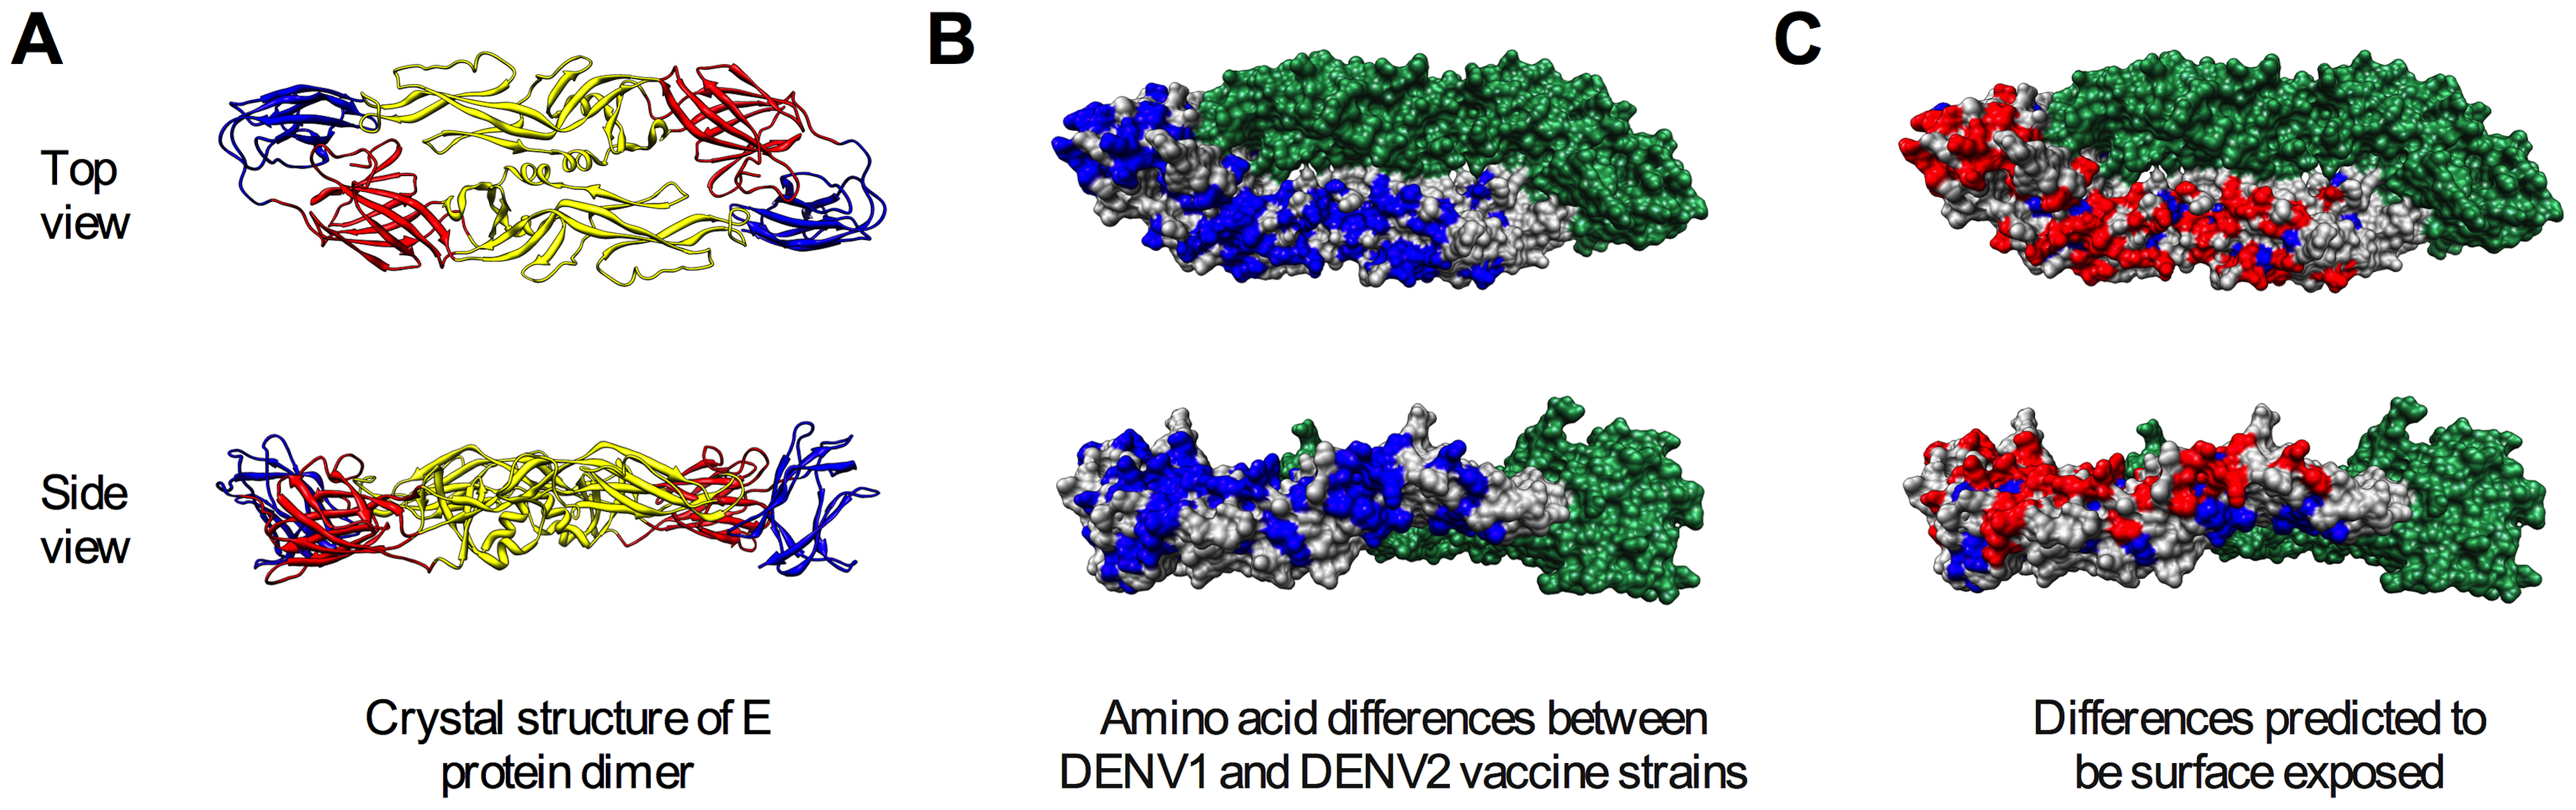 Surface-accessible residues that differ between DENV1 and DENV2 identified for mutagenesis.